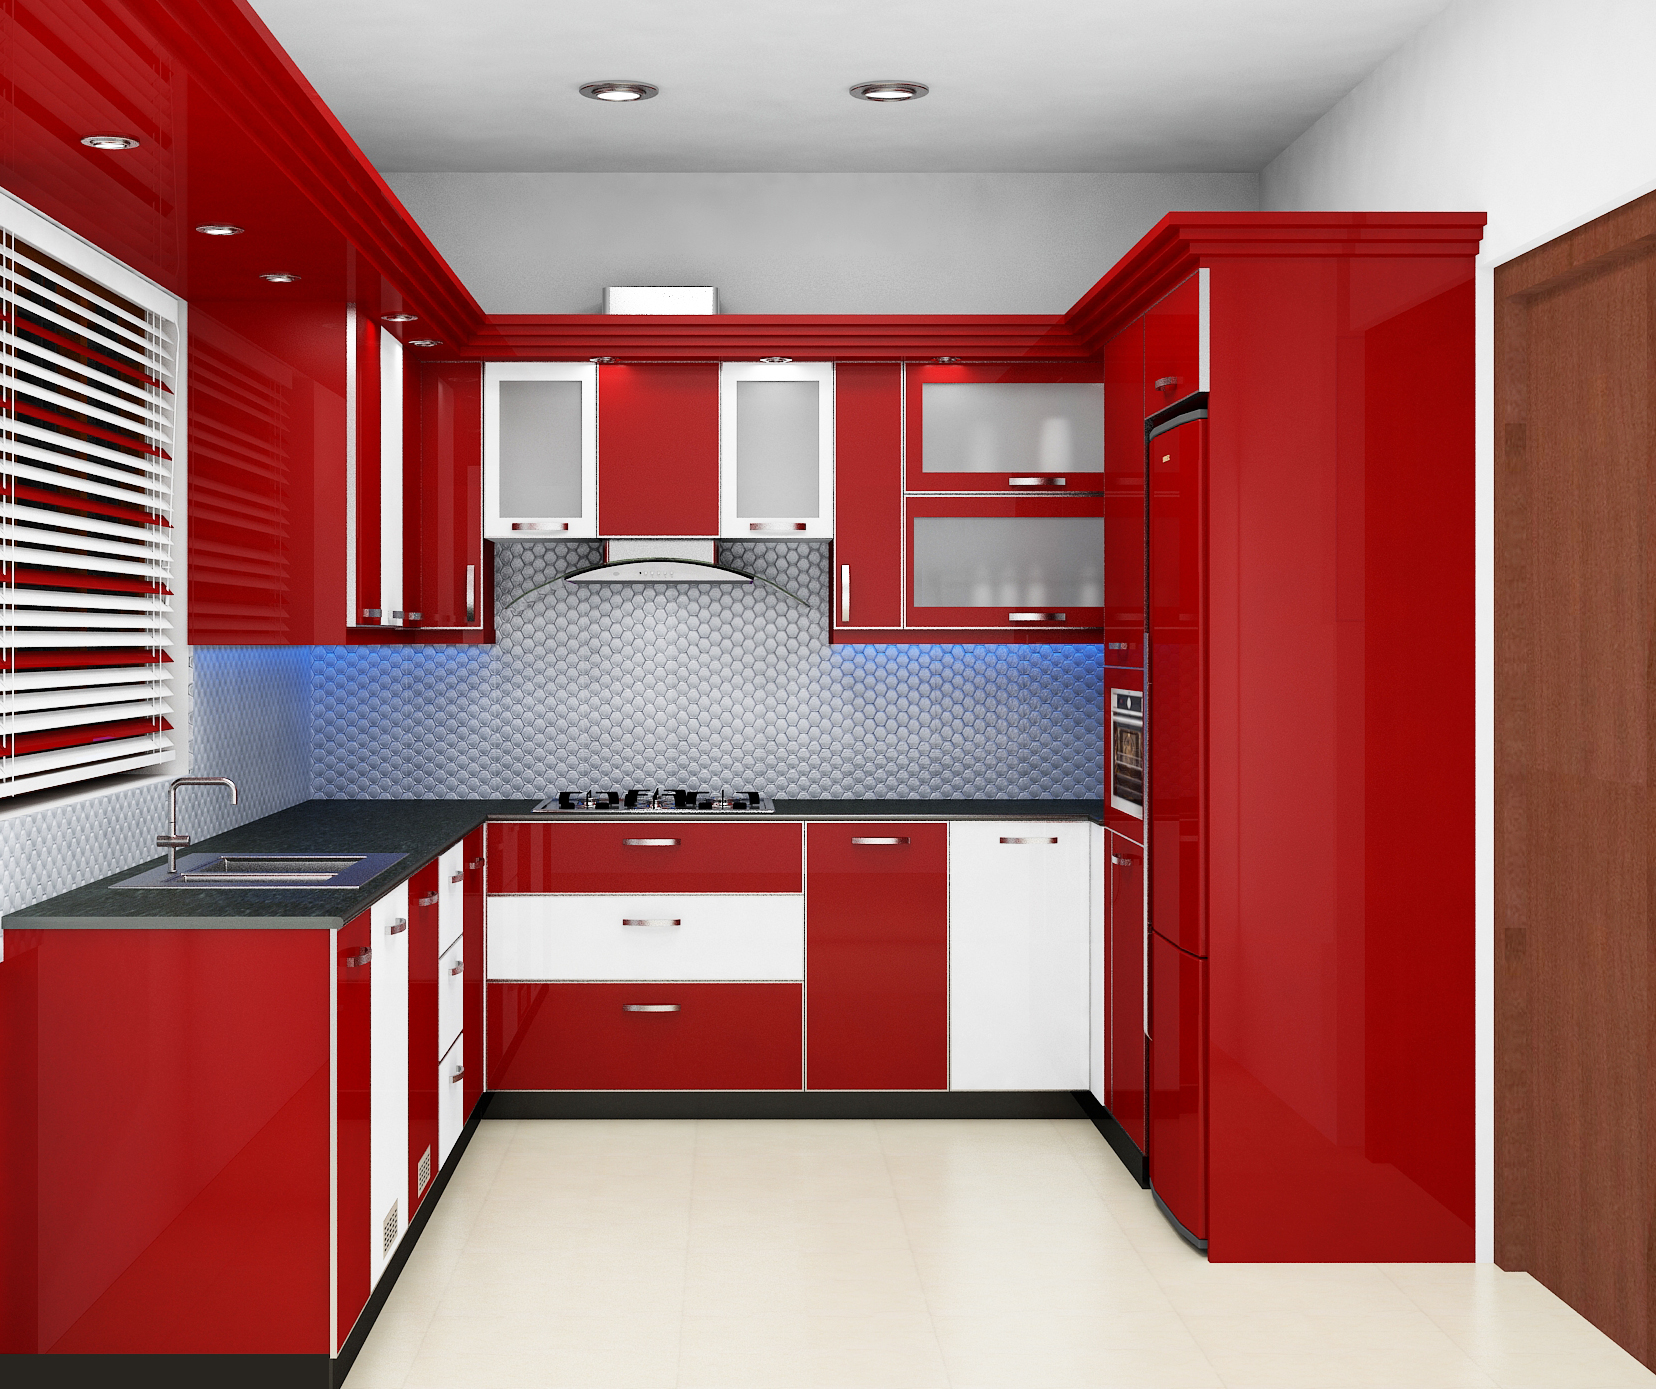 Exemplary and amazing modular kitchen home interior design Interior design your home